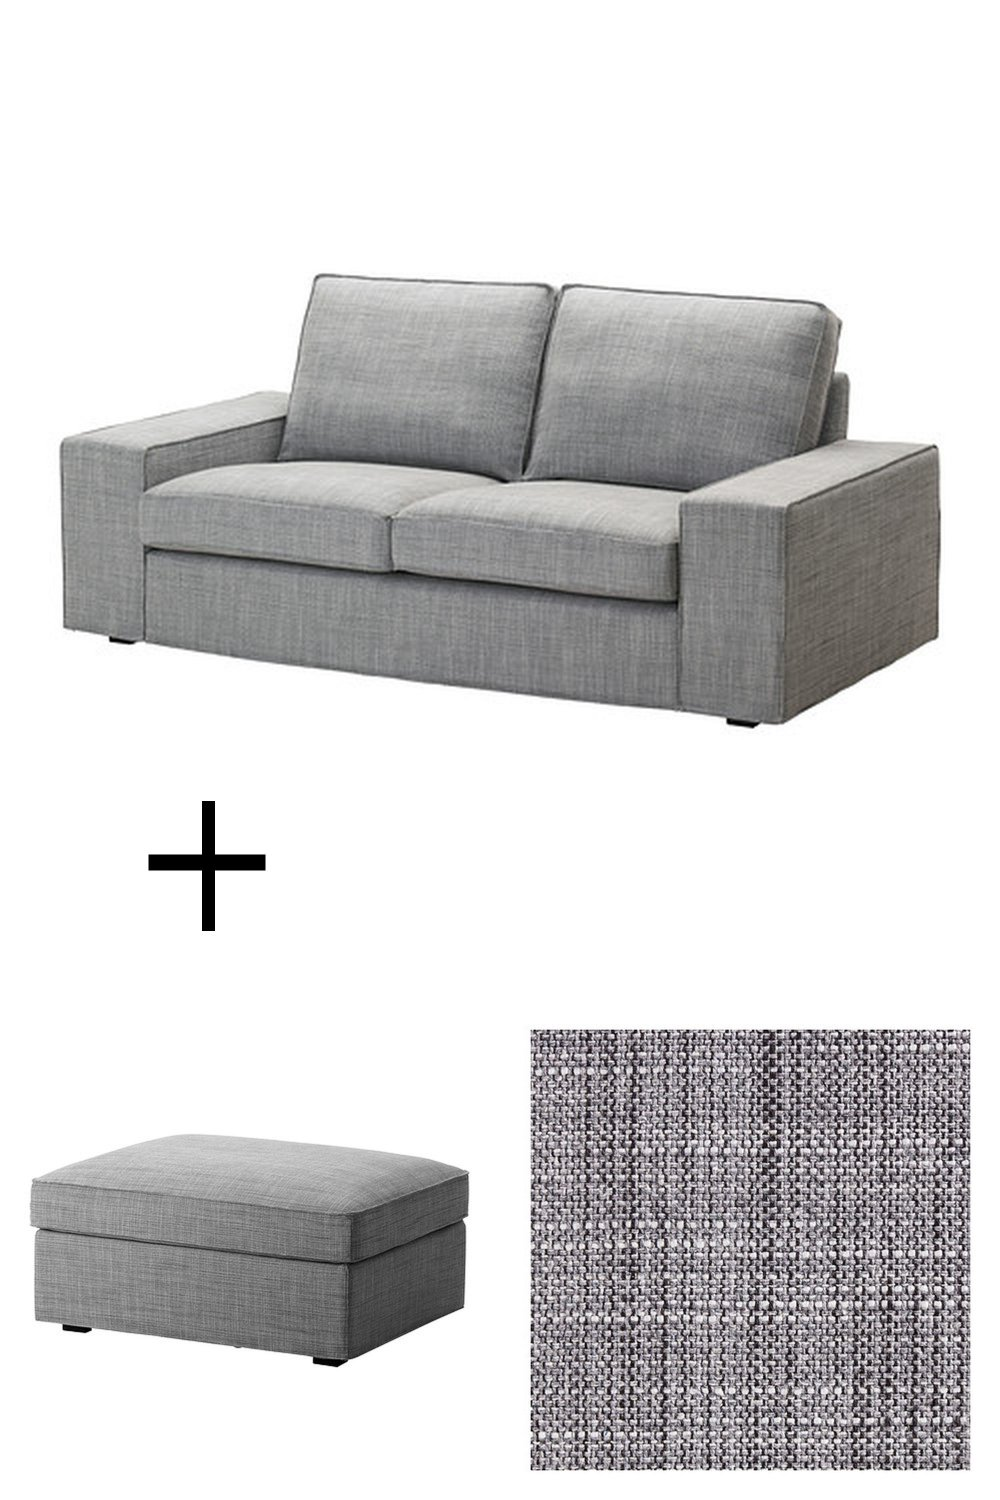 Ikea Kivik 2 Seat Sofa And Footstool Slipcovers Loveseat Ottoman Covers Isunda Gray Grey